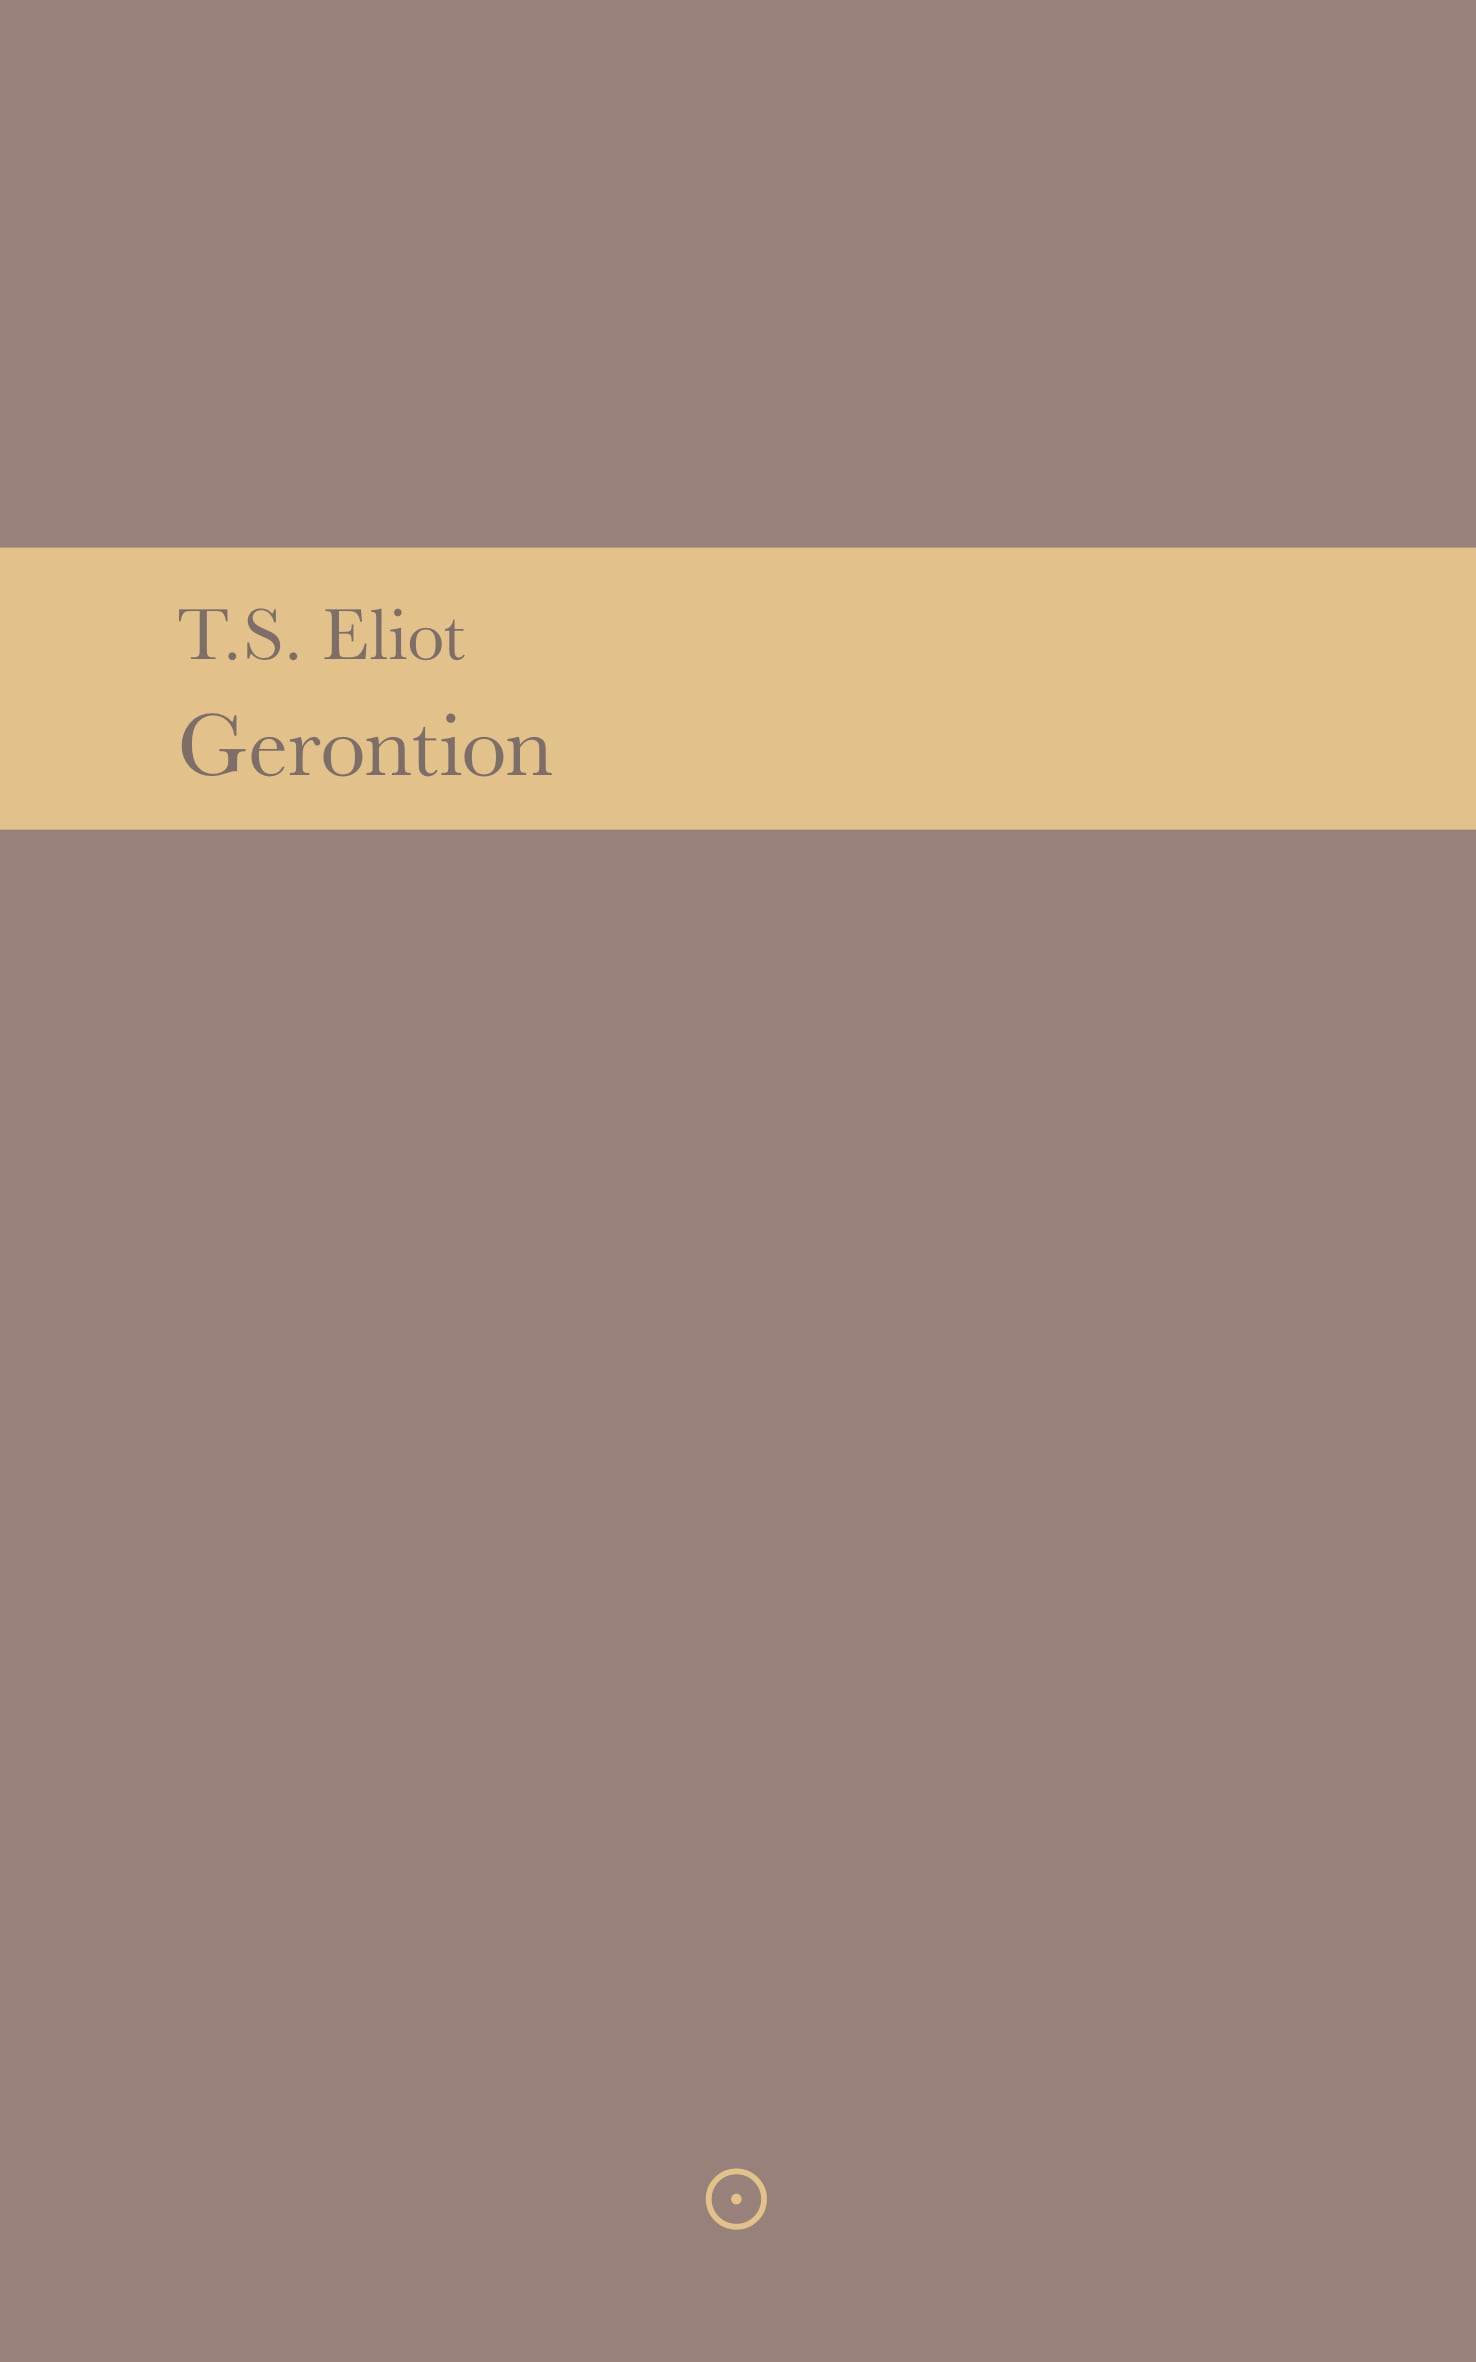 Gerontion – T.S. Eliot